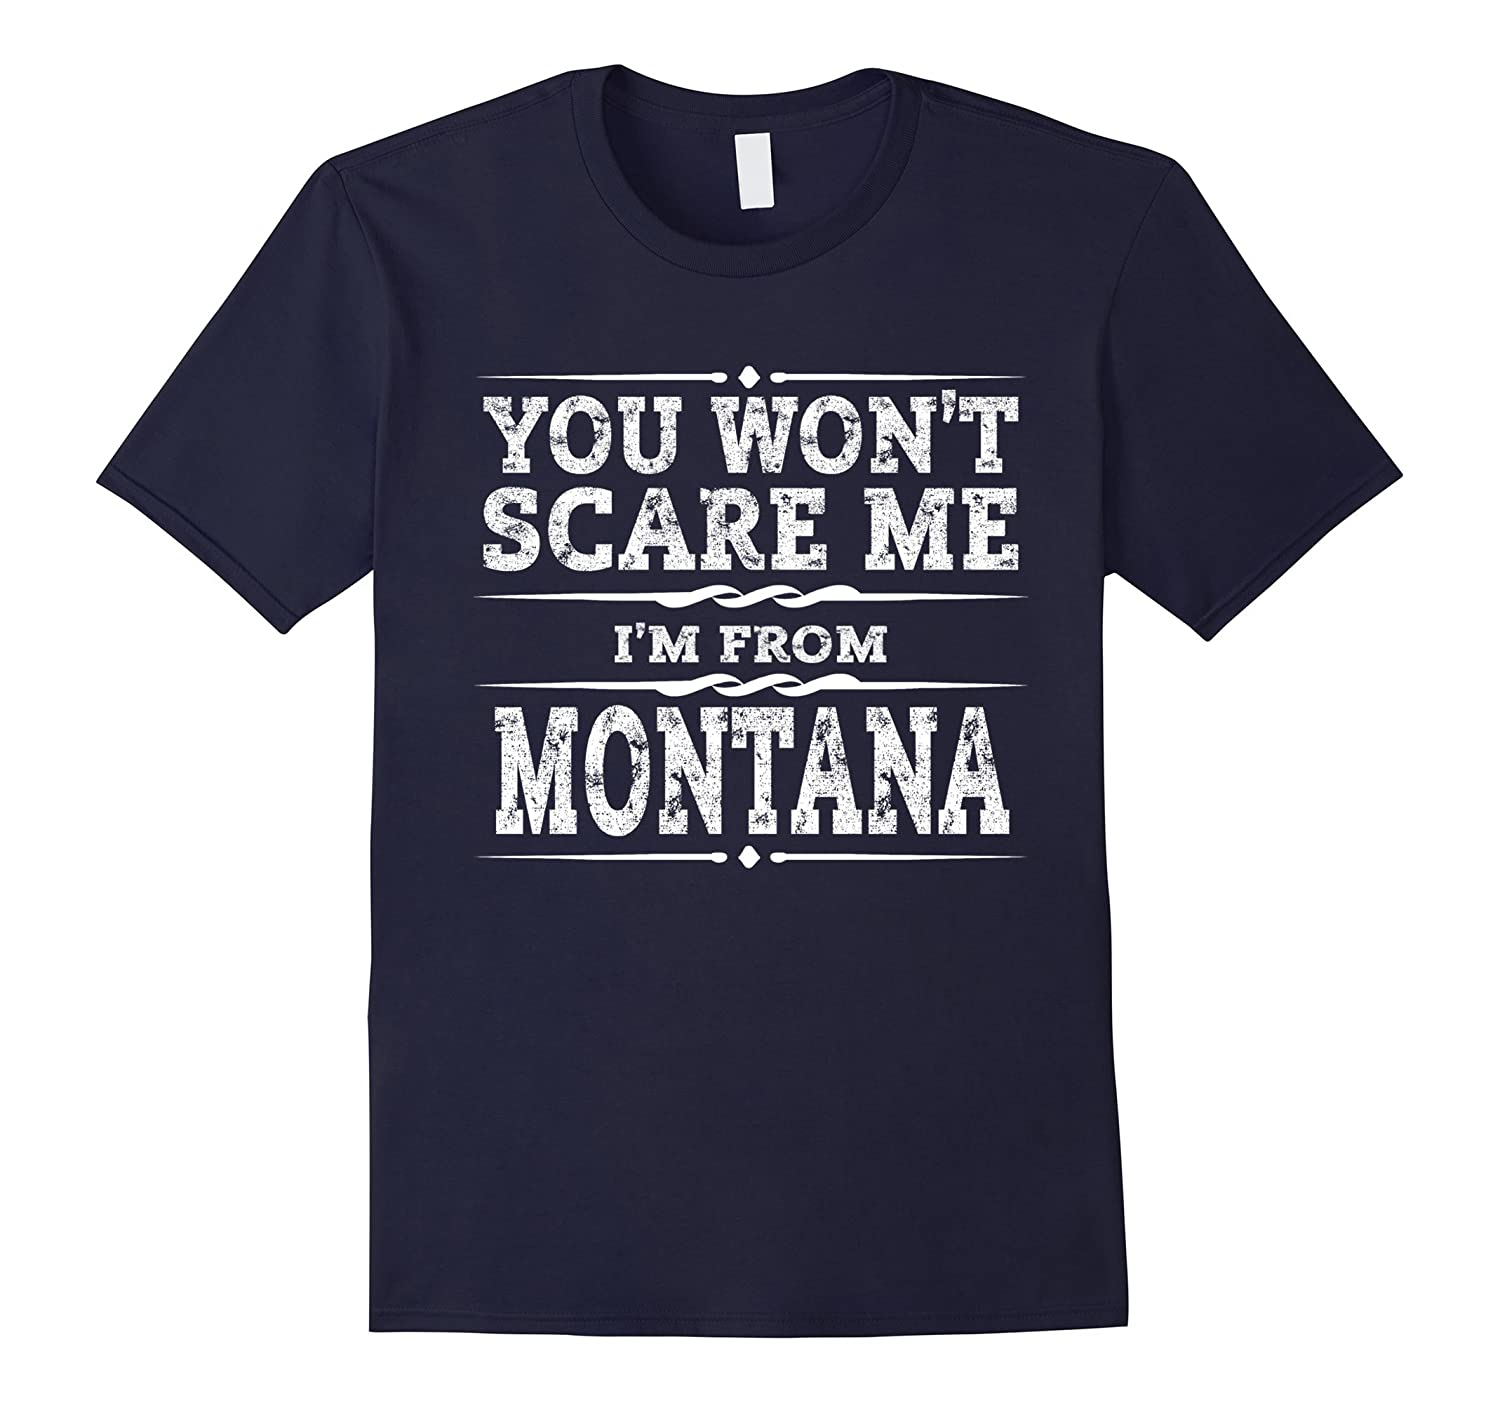 You won't scare me, I'm from Montana Shirt - Halloween Tee-CL